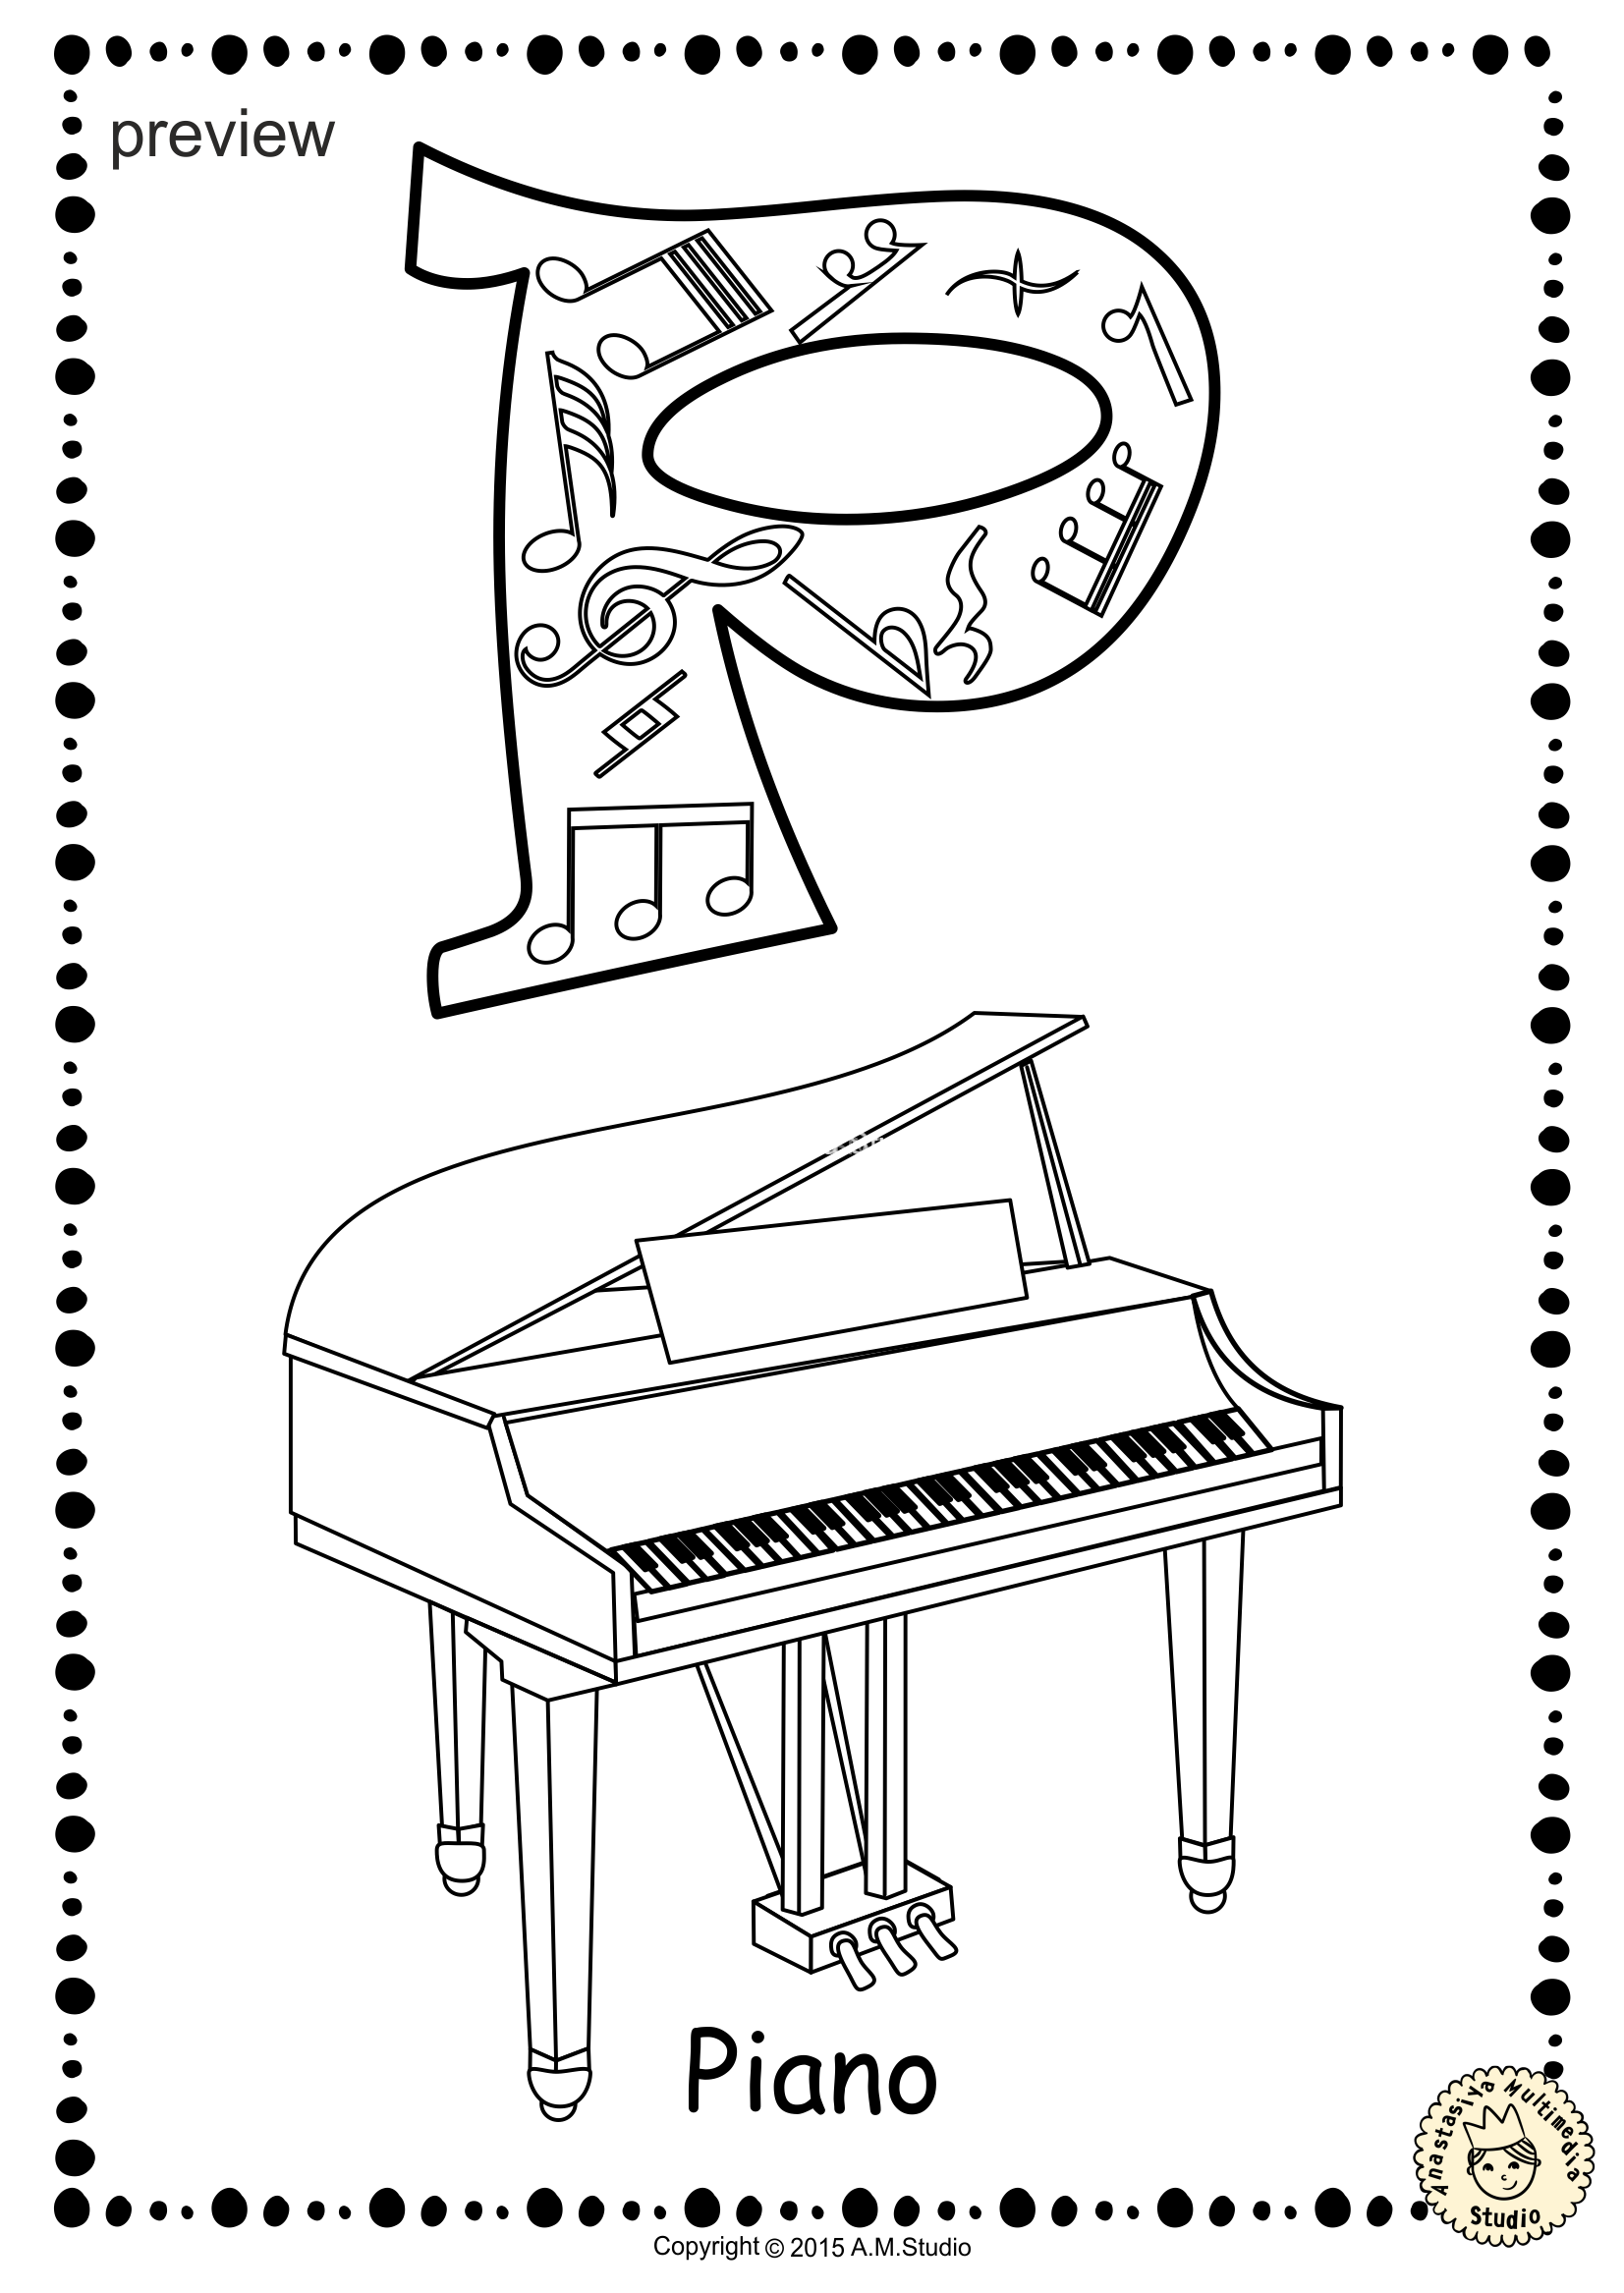 music notes coloring pages pdf music symbols coloring pages with answers by anastasiya music coloring pdf pages notes